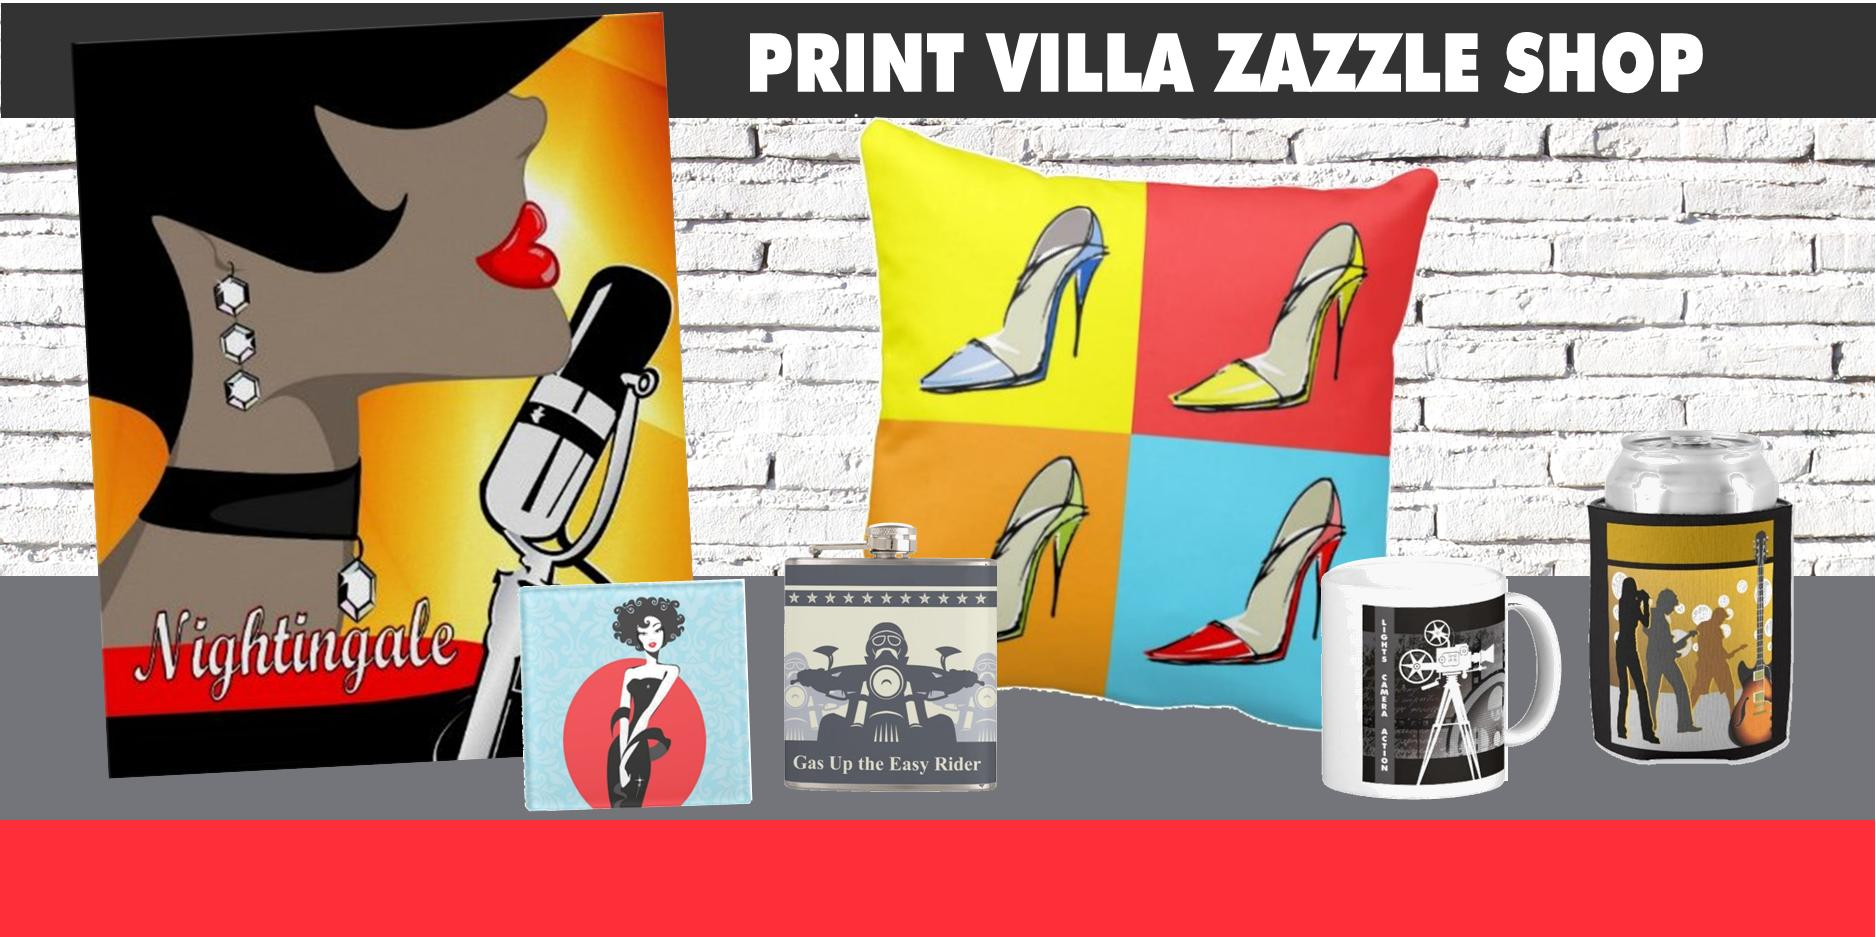 Print Villa Zazzle Shop